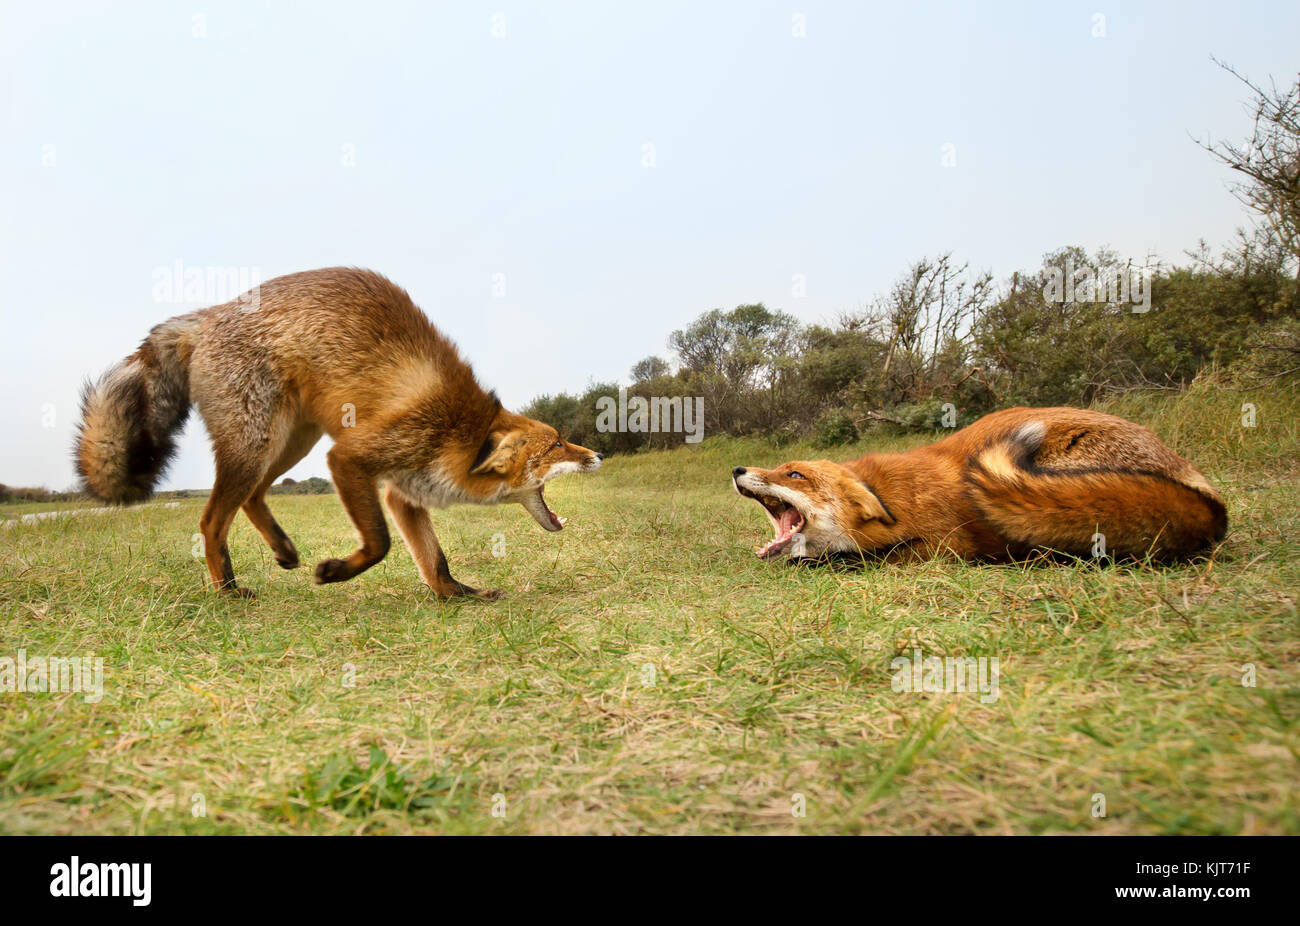 Two red foxes attacking each other and fighting over a territory trying to bite. - Stock Image